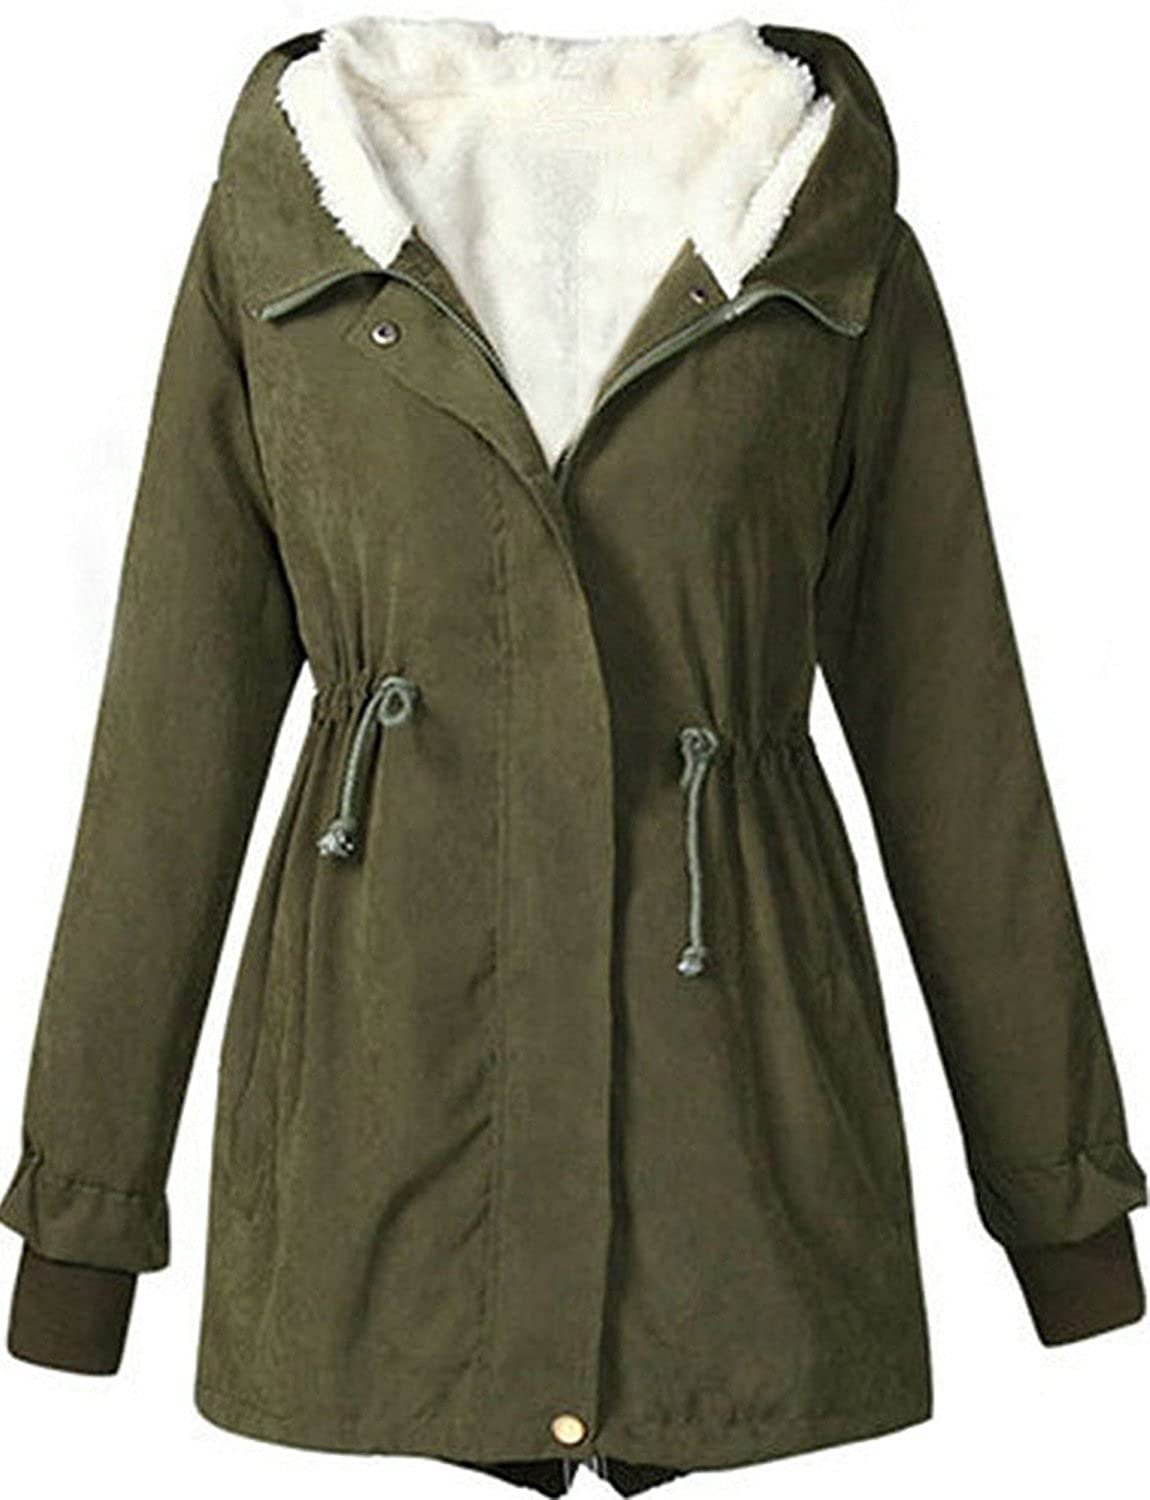 Greenis Autumn Winter Womens Hooded Thick Padded Long Coat Outerwear Jacket